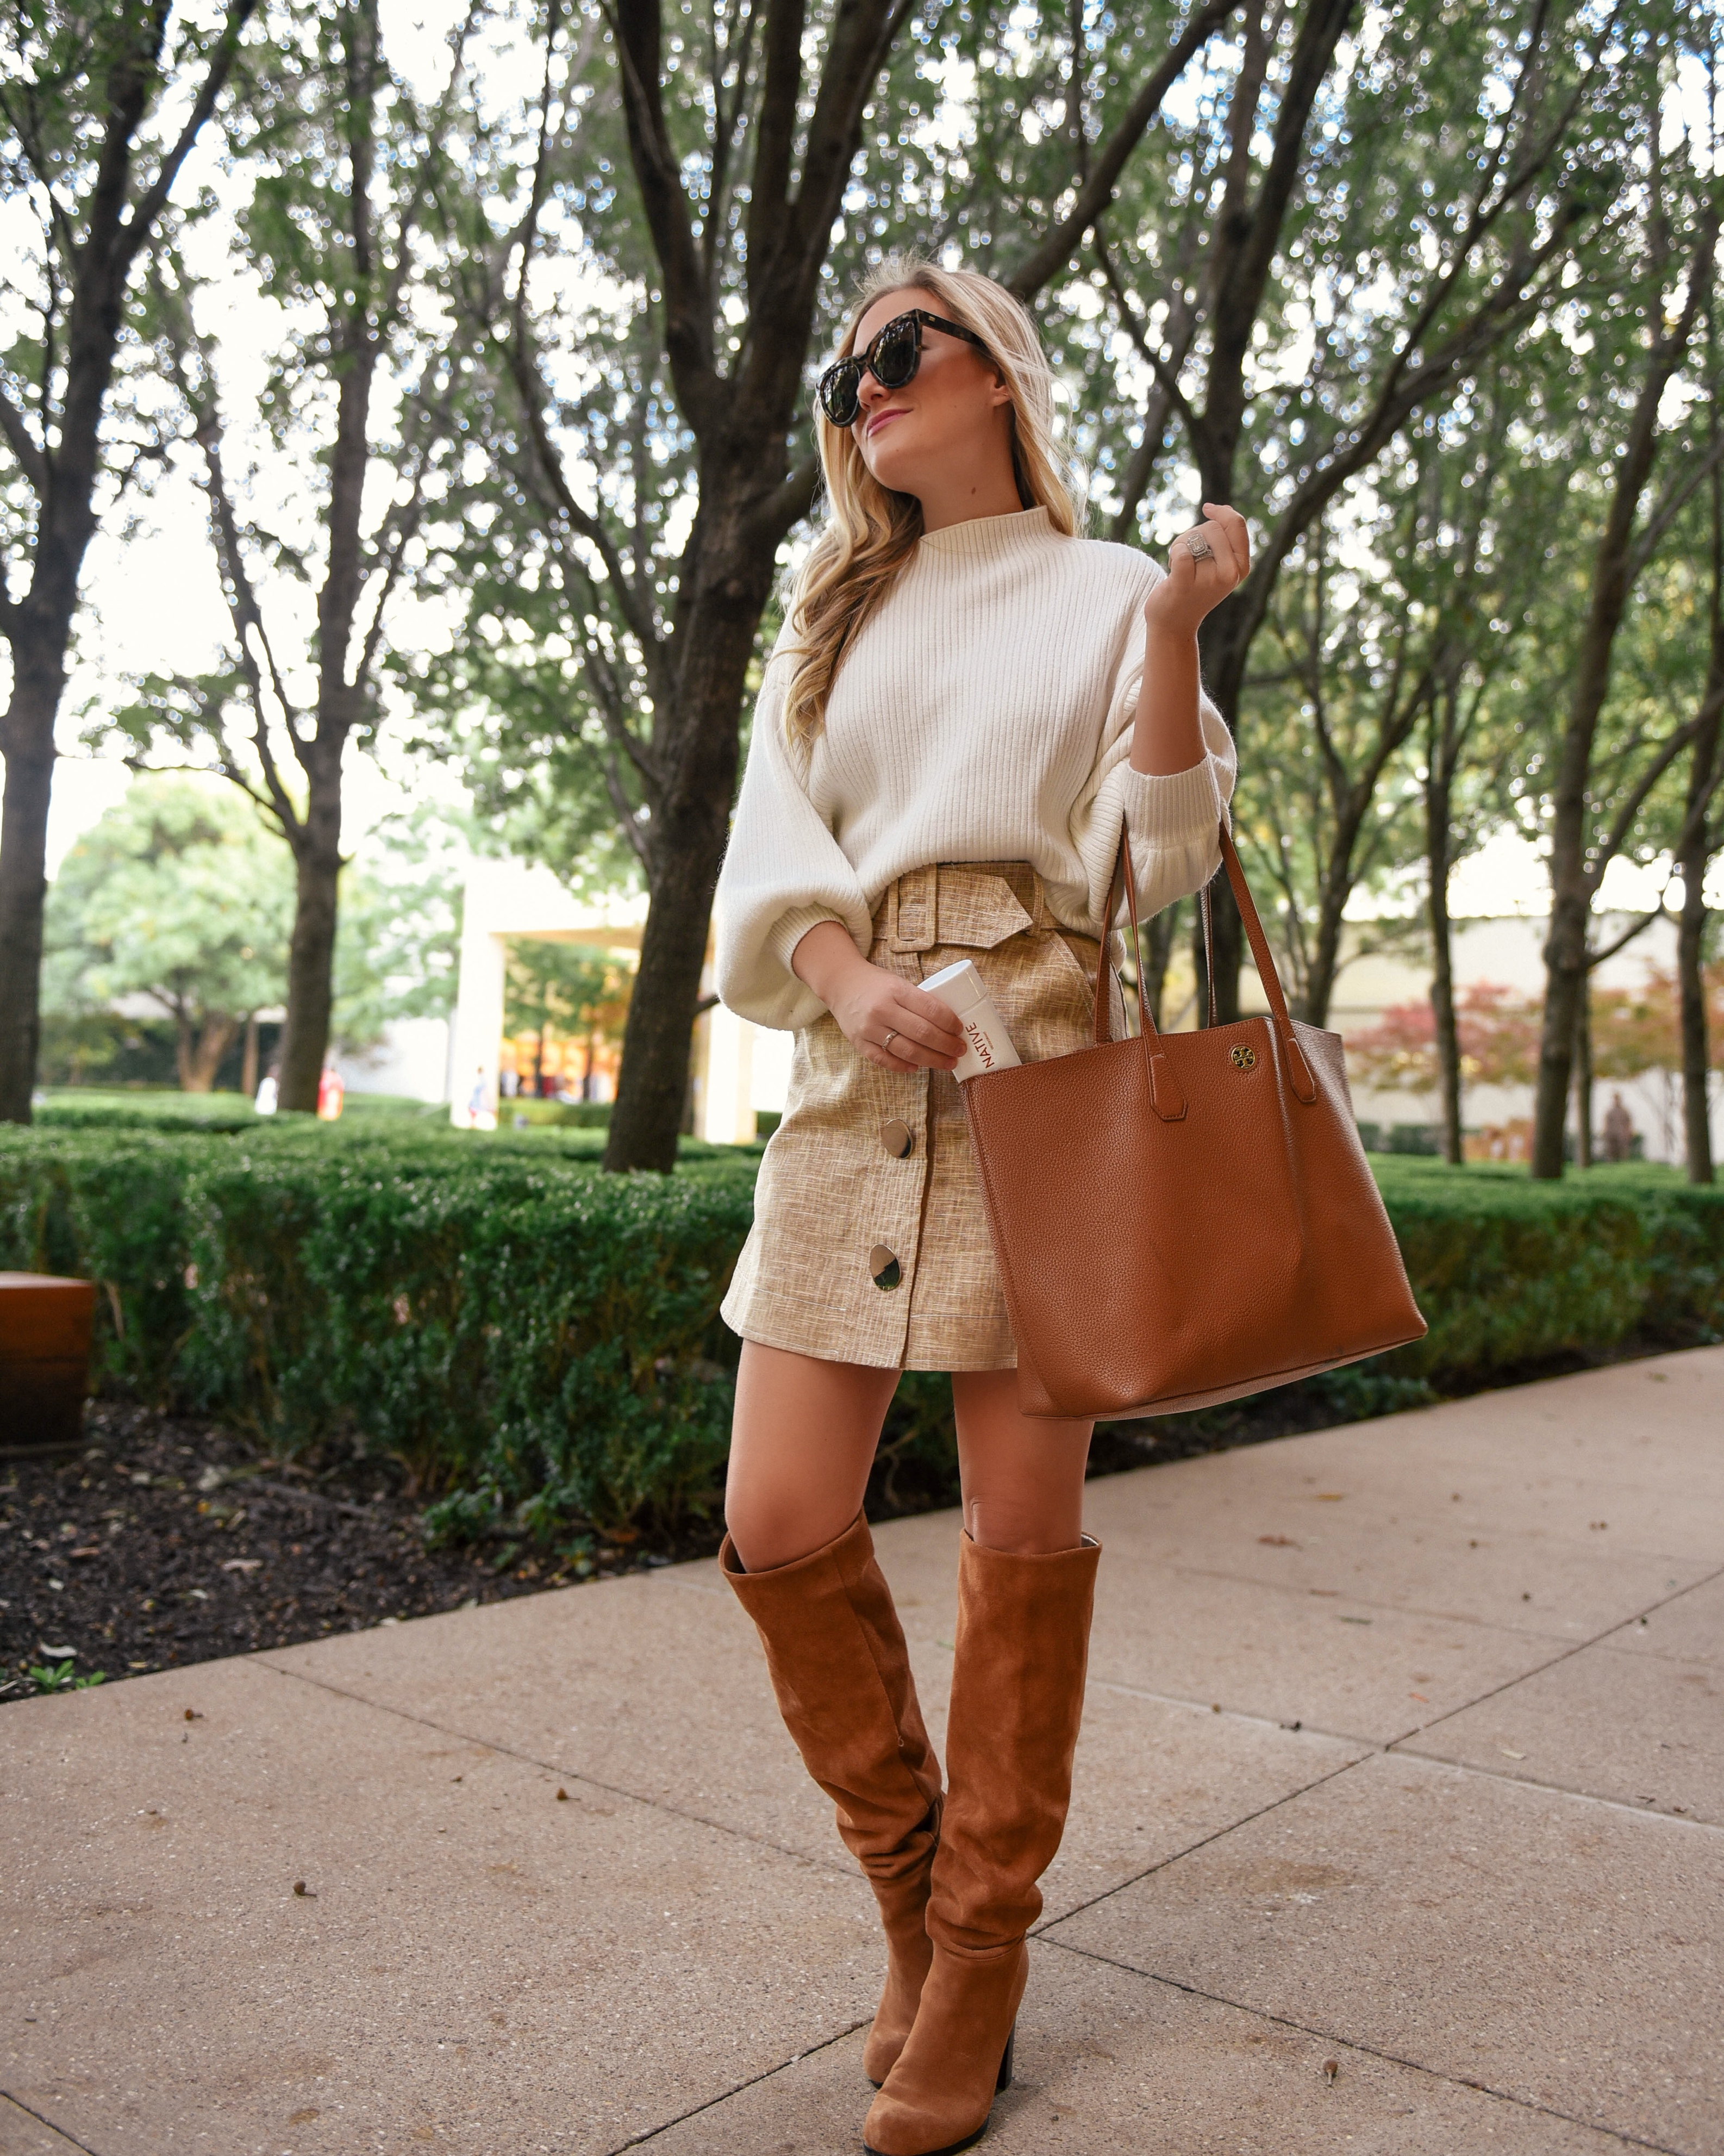 Native-Natural-Deodorant-Lo-Murphy-Fall-Outfit-Fall-Style-Clean-Beauty-Camel-Boots